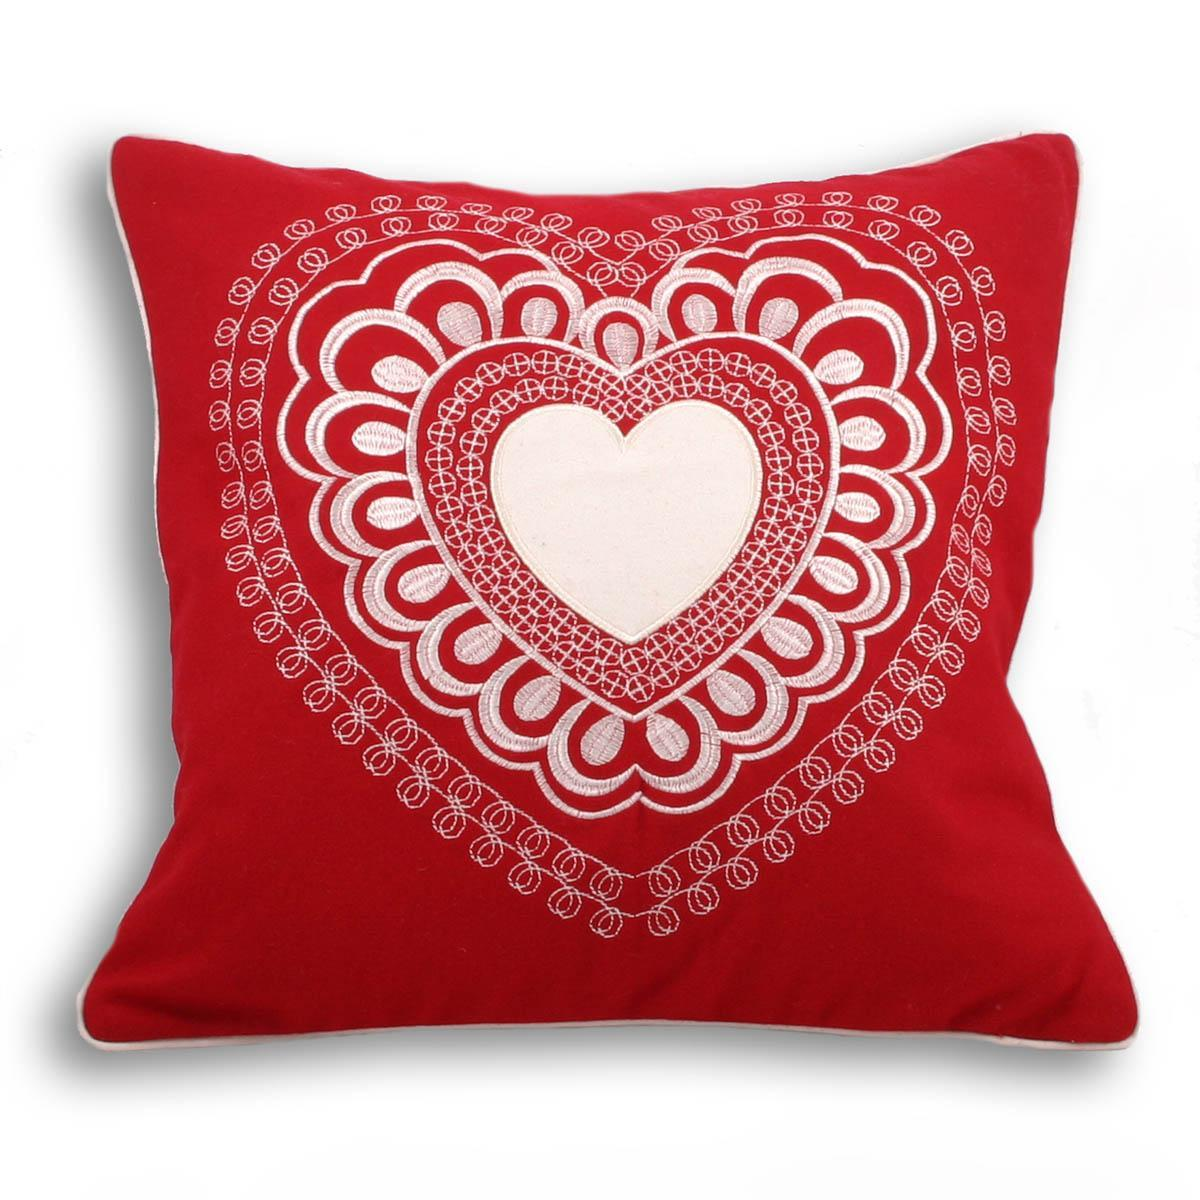 Riva Cushions And Throws Valantine CC Red Picture